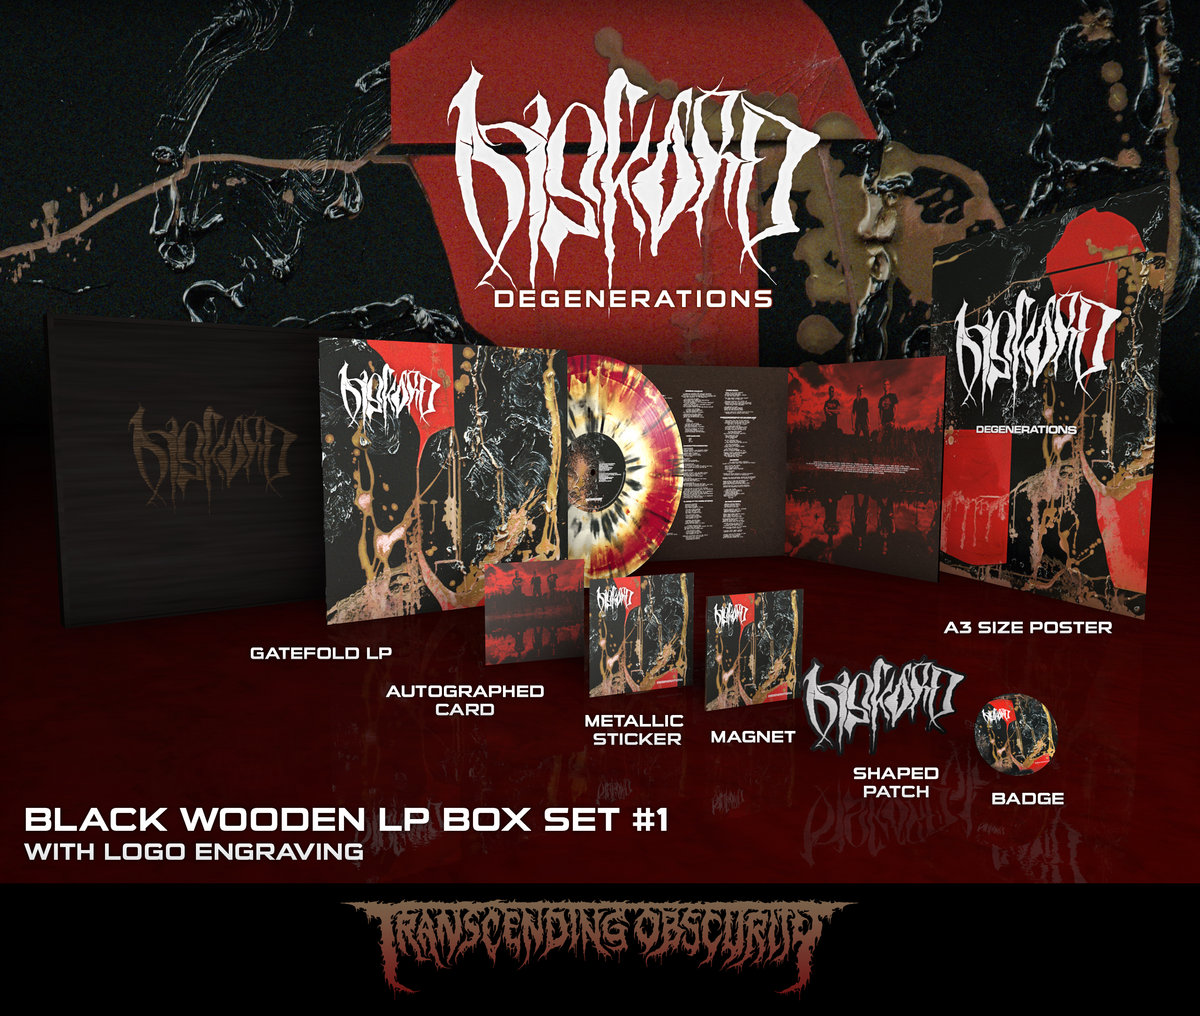 DISKORD - Degenerations Black Wooden LP Box Set (Limited to 25 per variant)